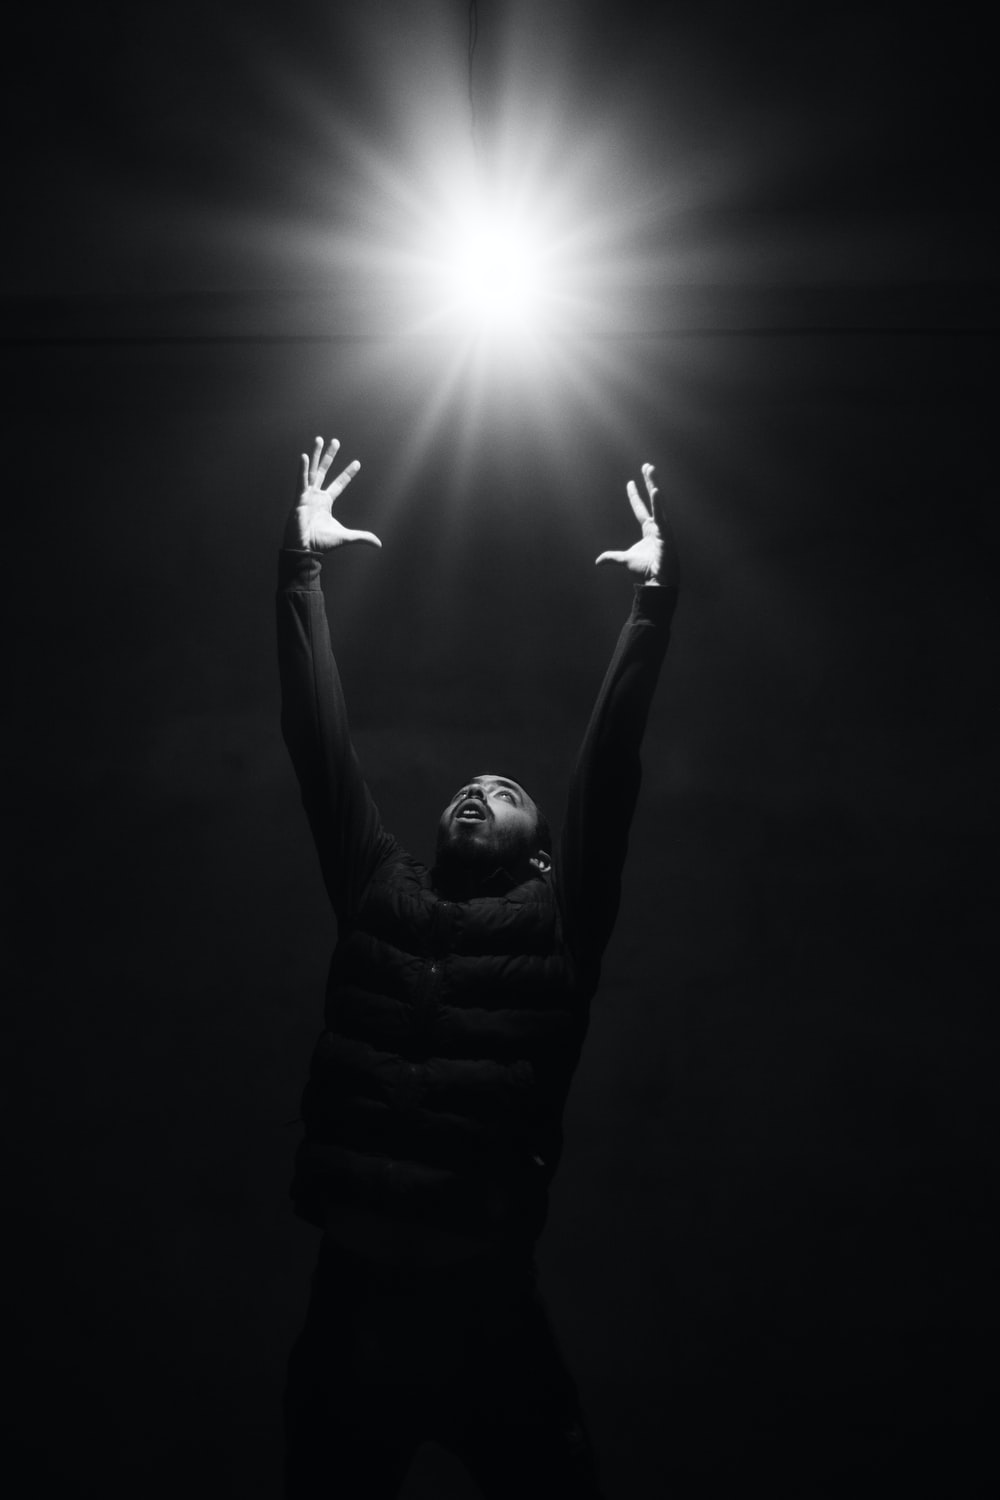 grayscale photo of man raising his hands